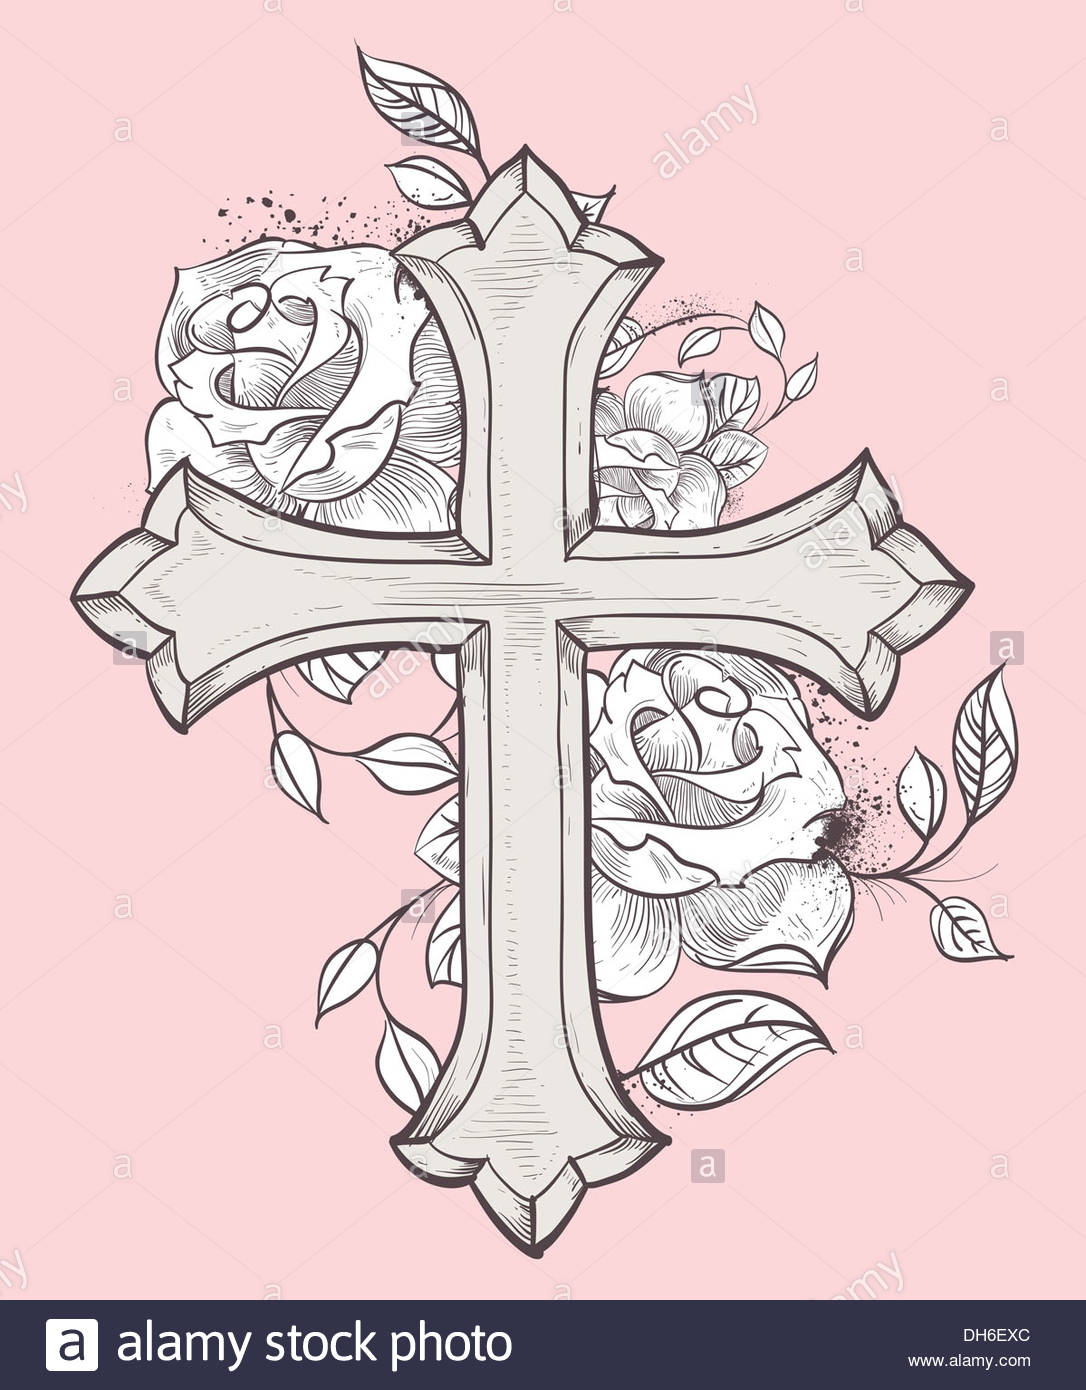 1086x1390 Beautiful Vector Illustration With Hand Drawn Cross And Roses